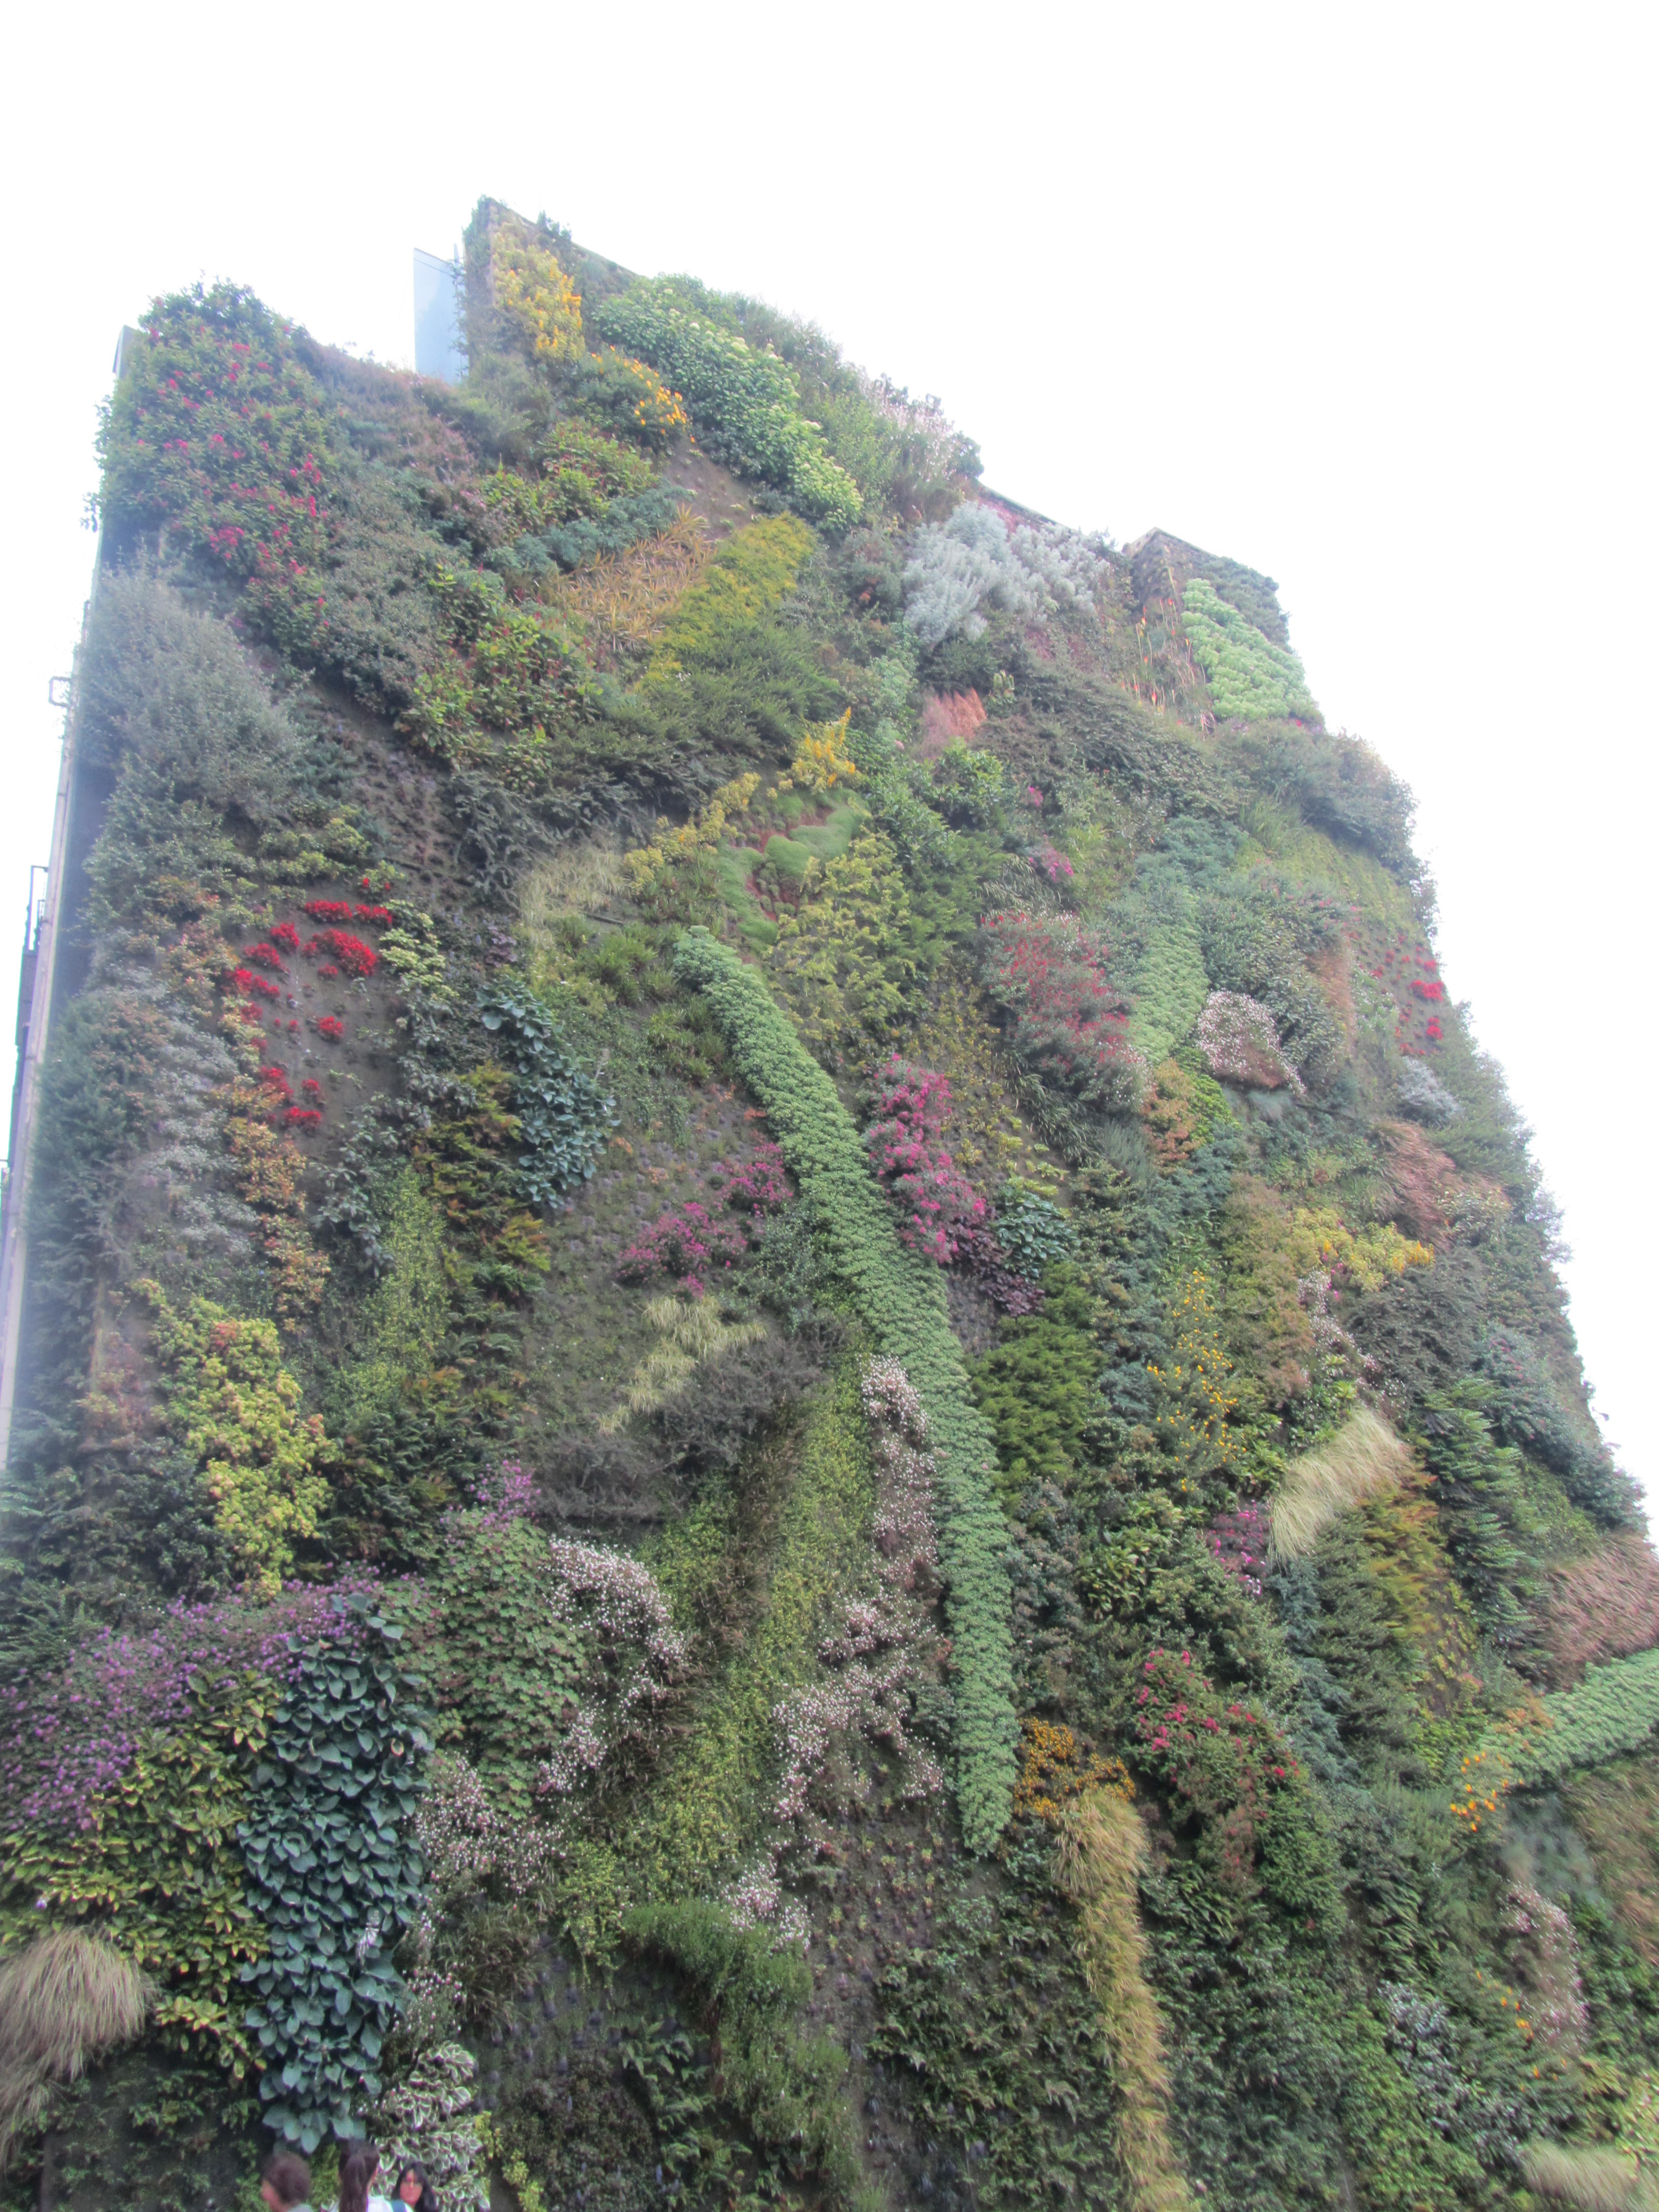 Green walls are one way to reduce urban heat and create more carbon sinks in the cities.